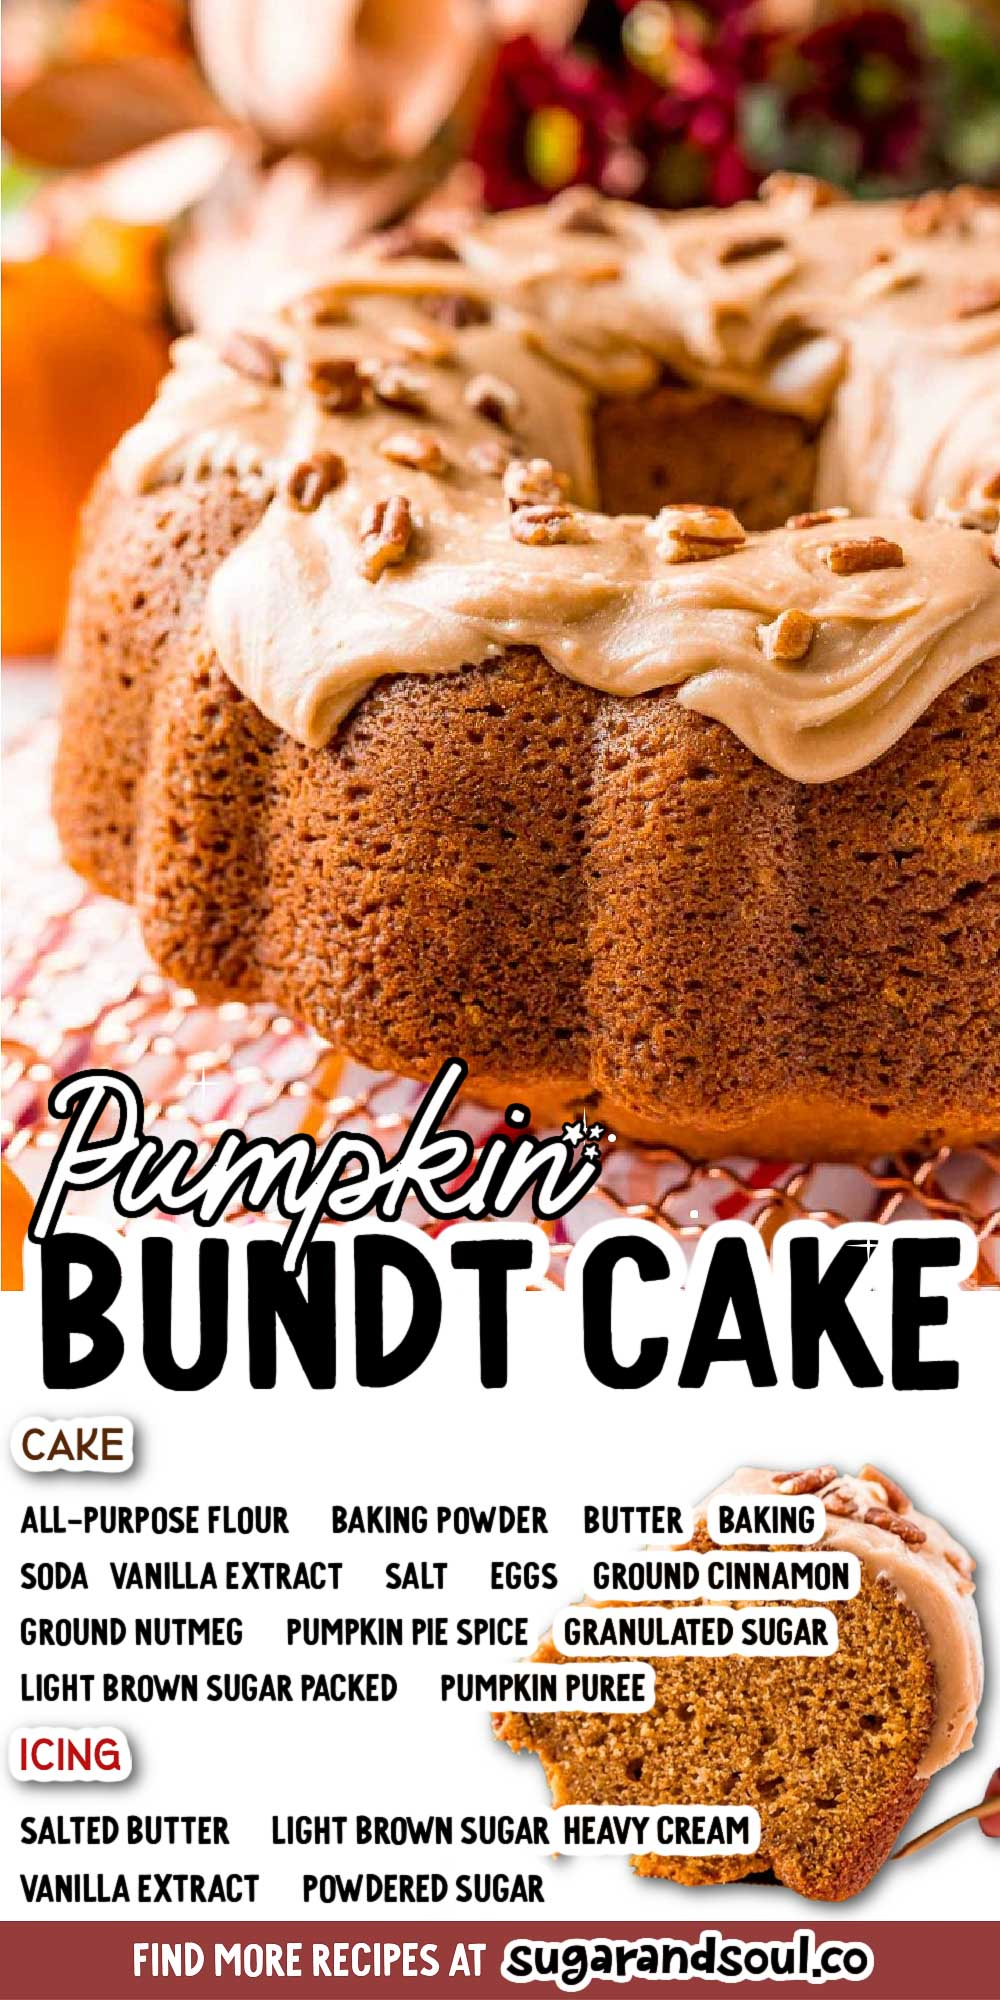 This Pumpkin Bundt Cake Recipe is for anyone who loves pumpkin spice! Pumpkin pound cake is laced with warm fall spices and topped with a decadent brown sugar icing. Baked in a Bundt pan, it looks ornate but is easy to make! via @sugarandsoulco